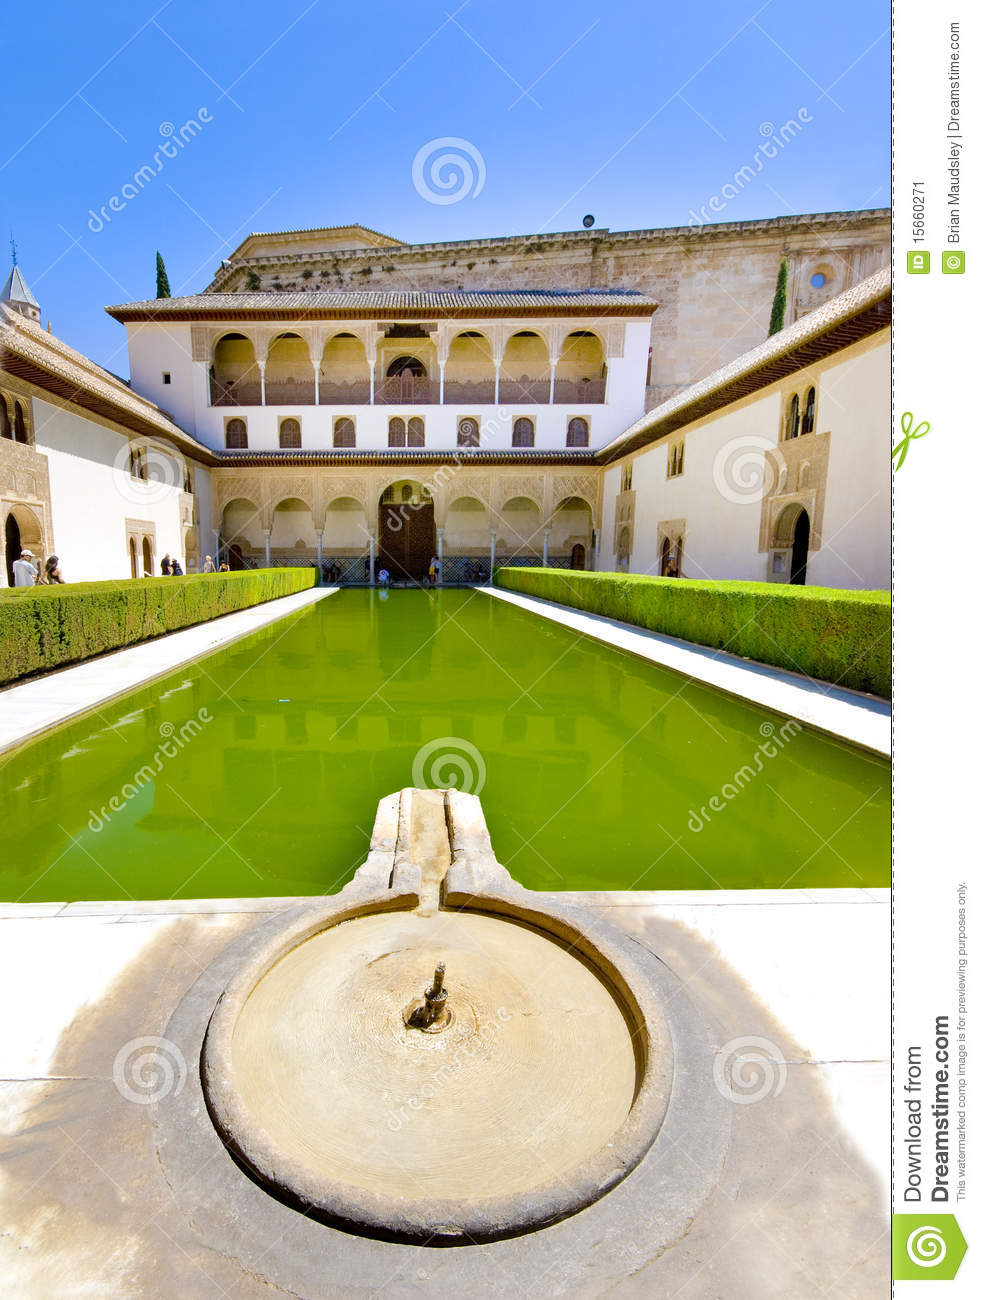 A cool Alhambra Palace fountain and pool. geanada.